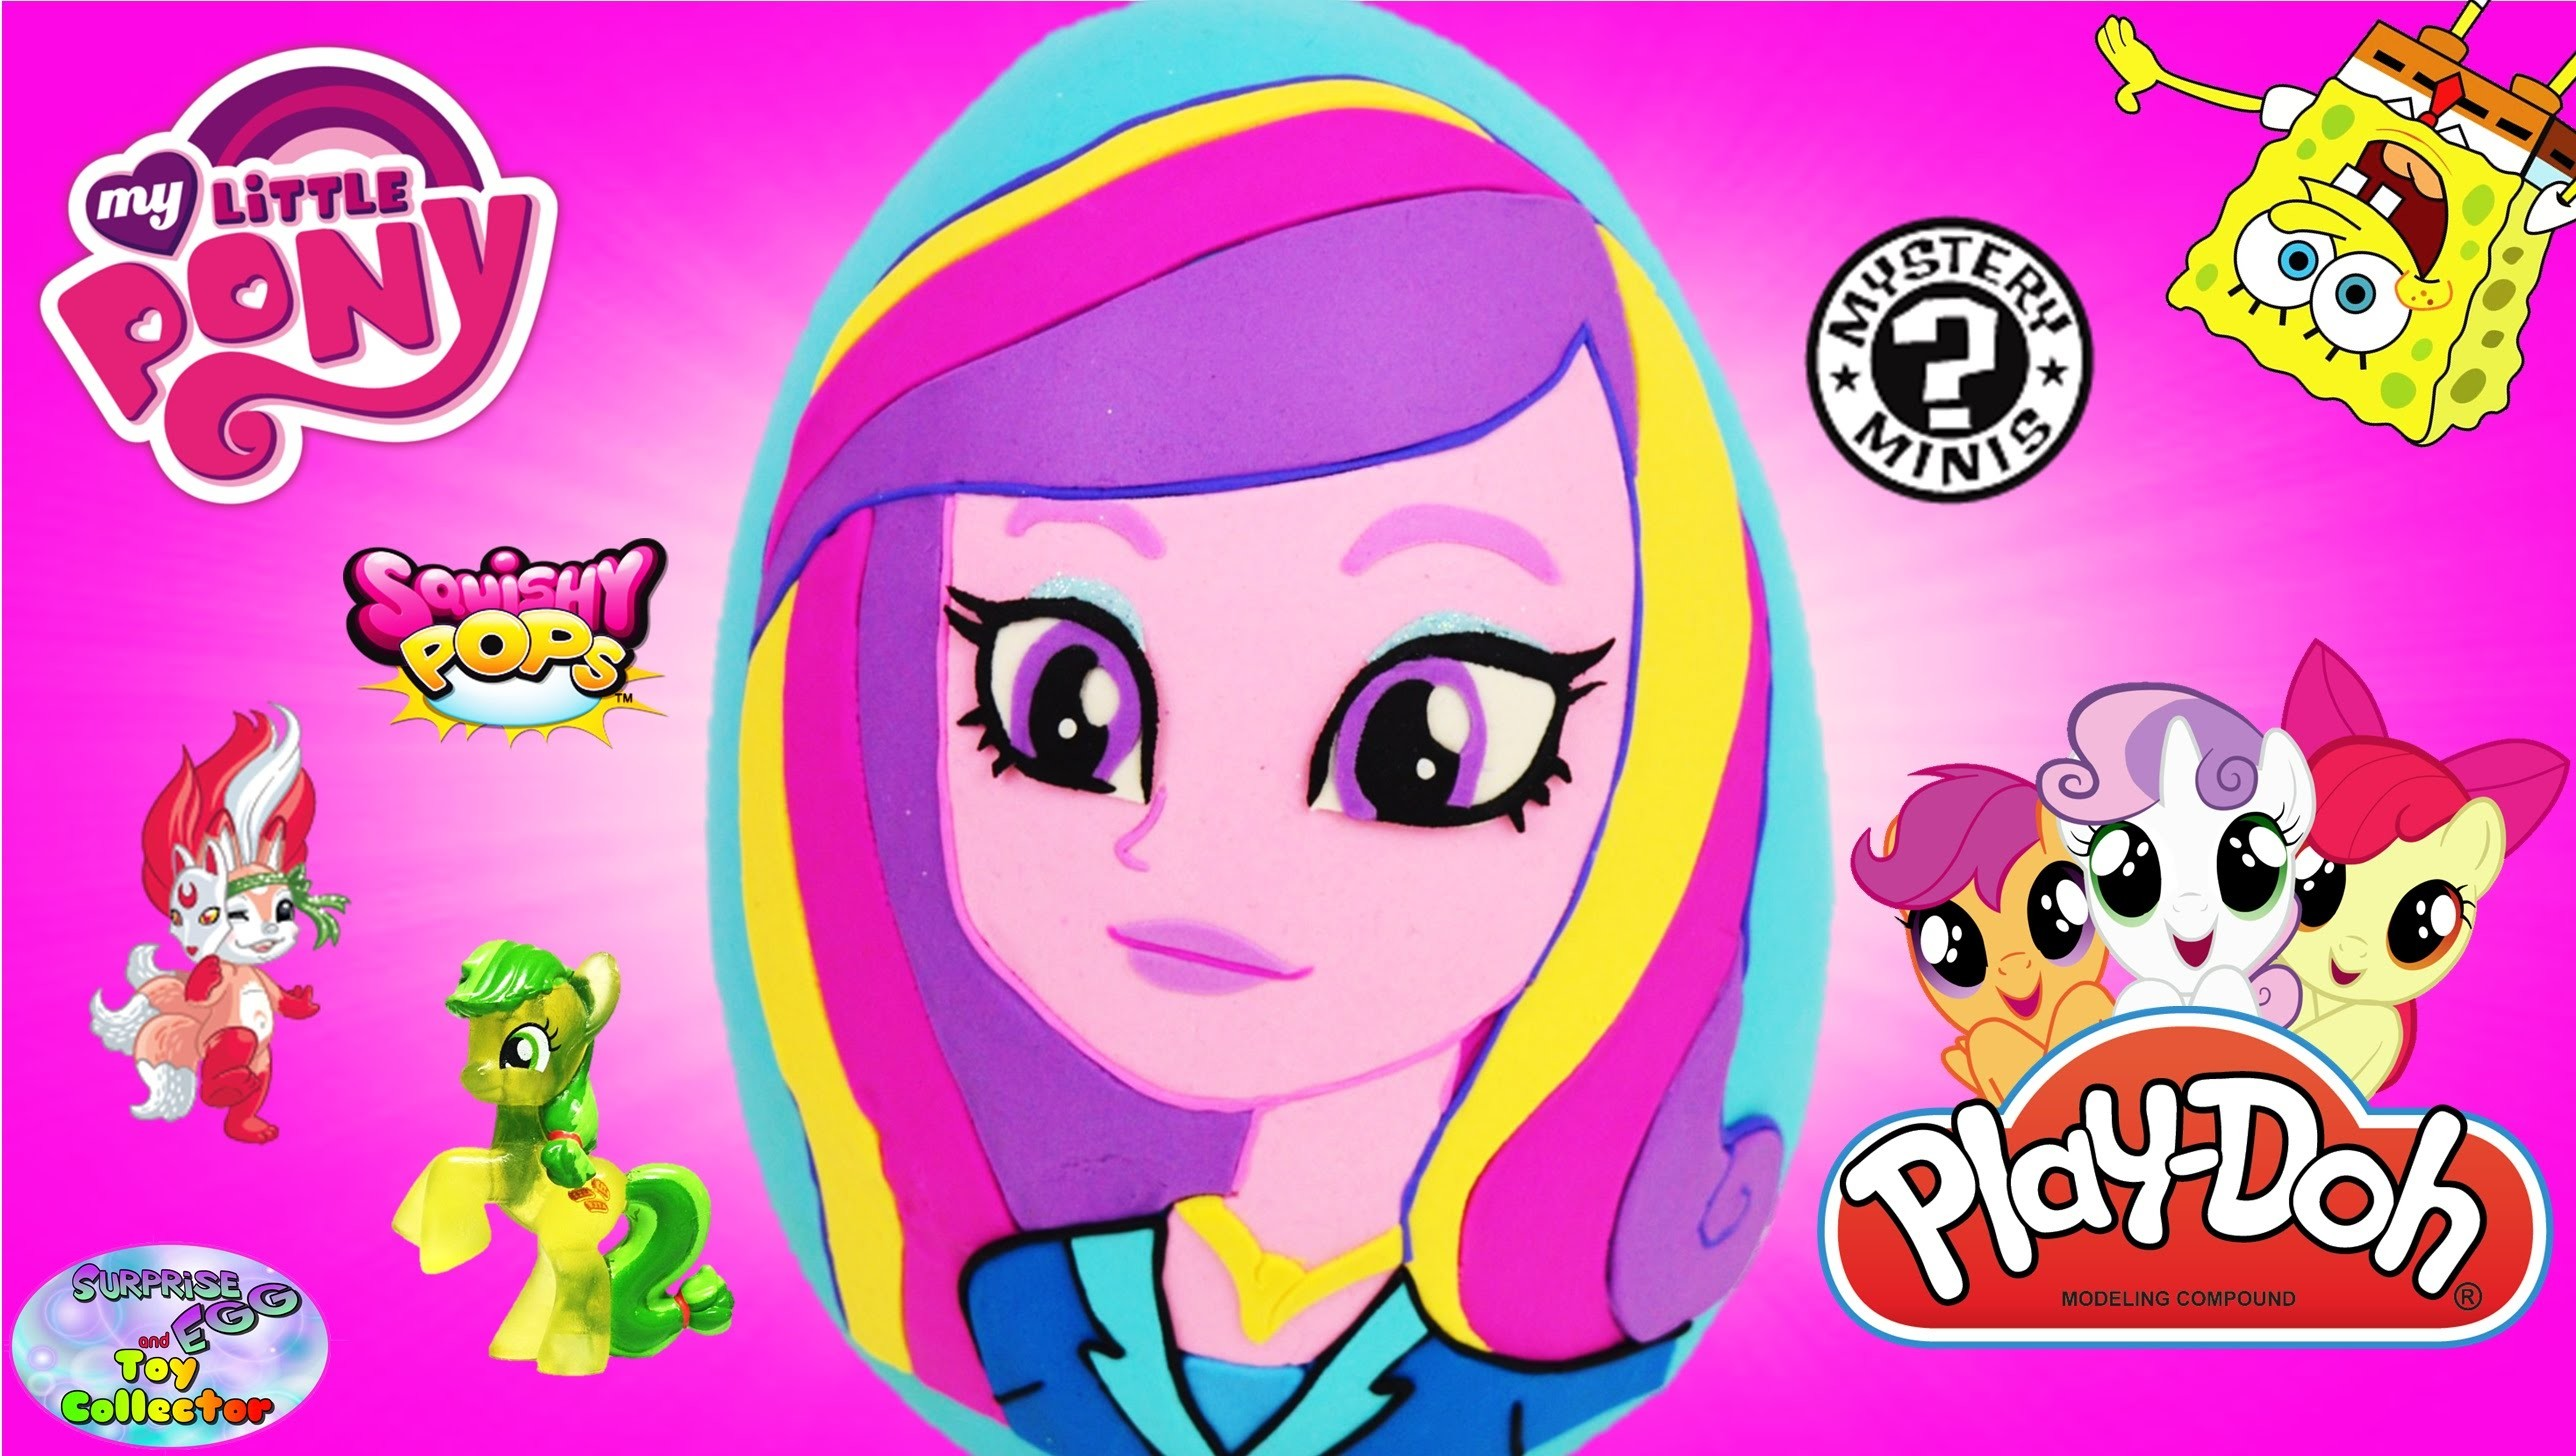 2576x1456 My Little Pony Giant Play Doh Surprise Egg Cadance Equestria Girls MLP  Princess Funko Minions - SETC - YouTube